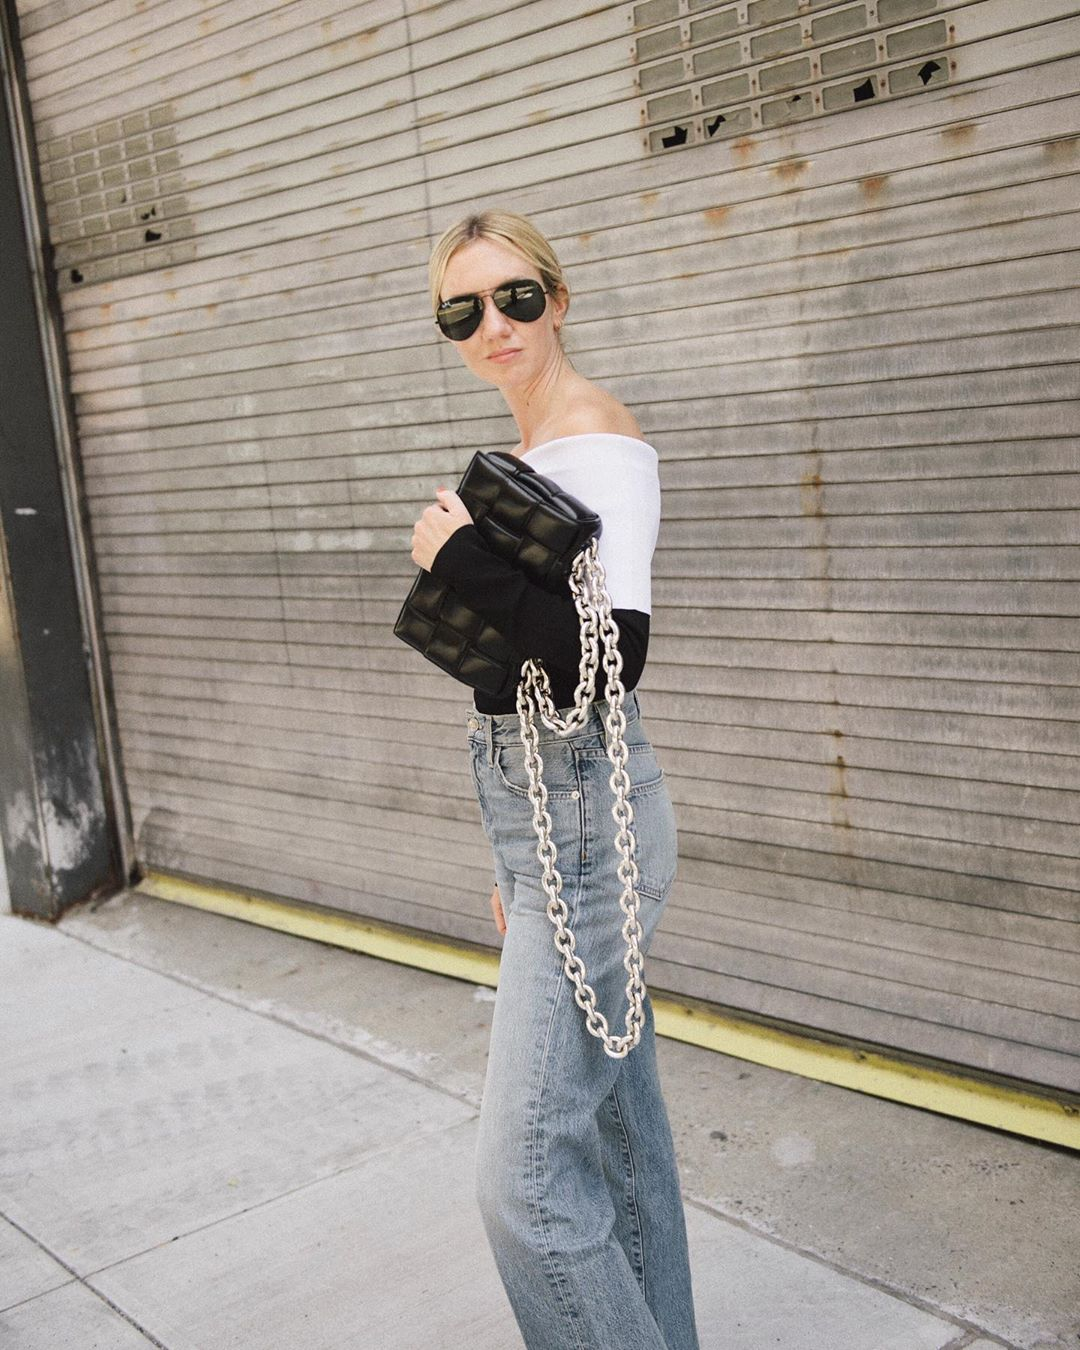 lisa-aiken-proenza-schouler-off-the-shoulder-two-tone-stretch-knit-top-instagram